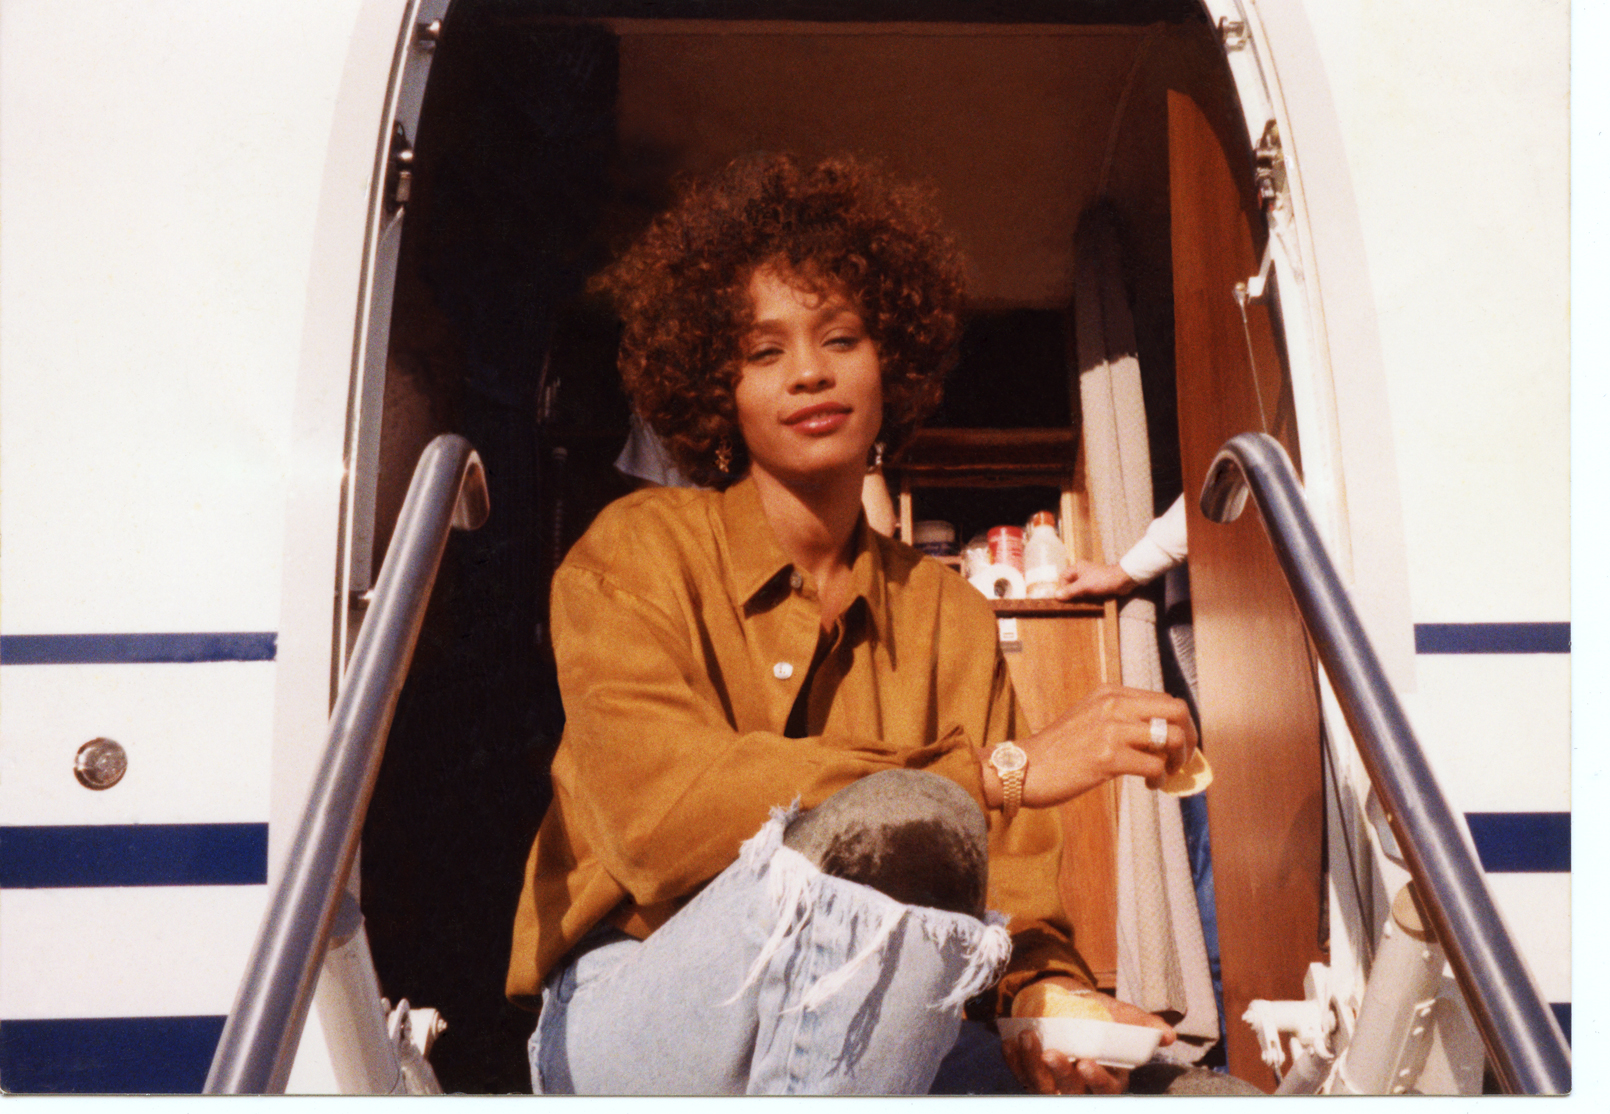 Whitney Houston sits in the entrance to her private jet